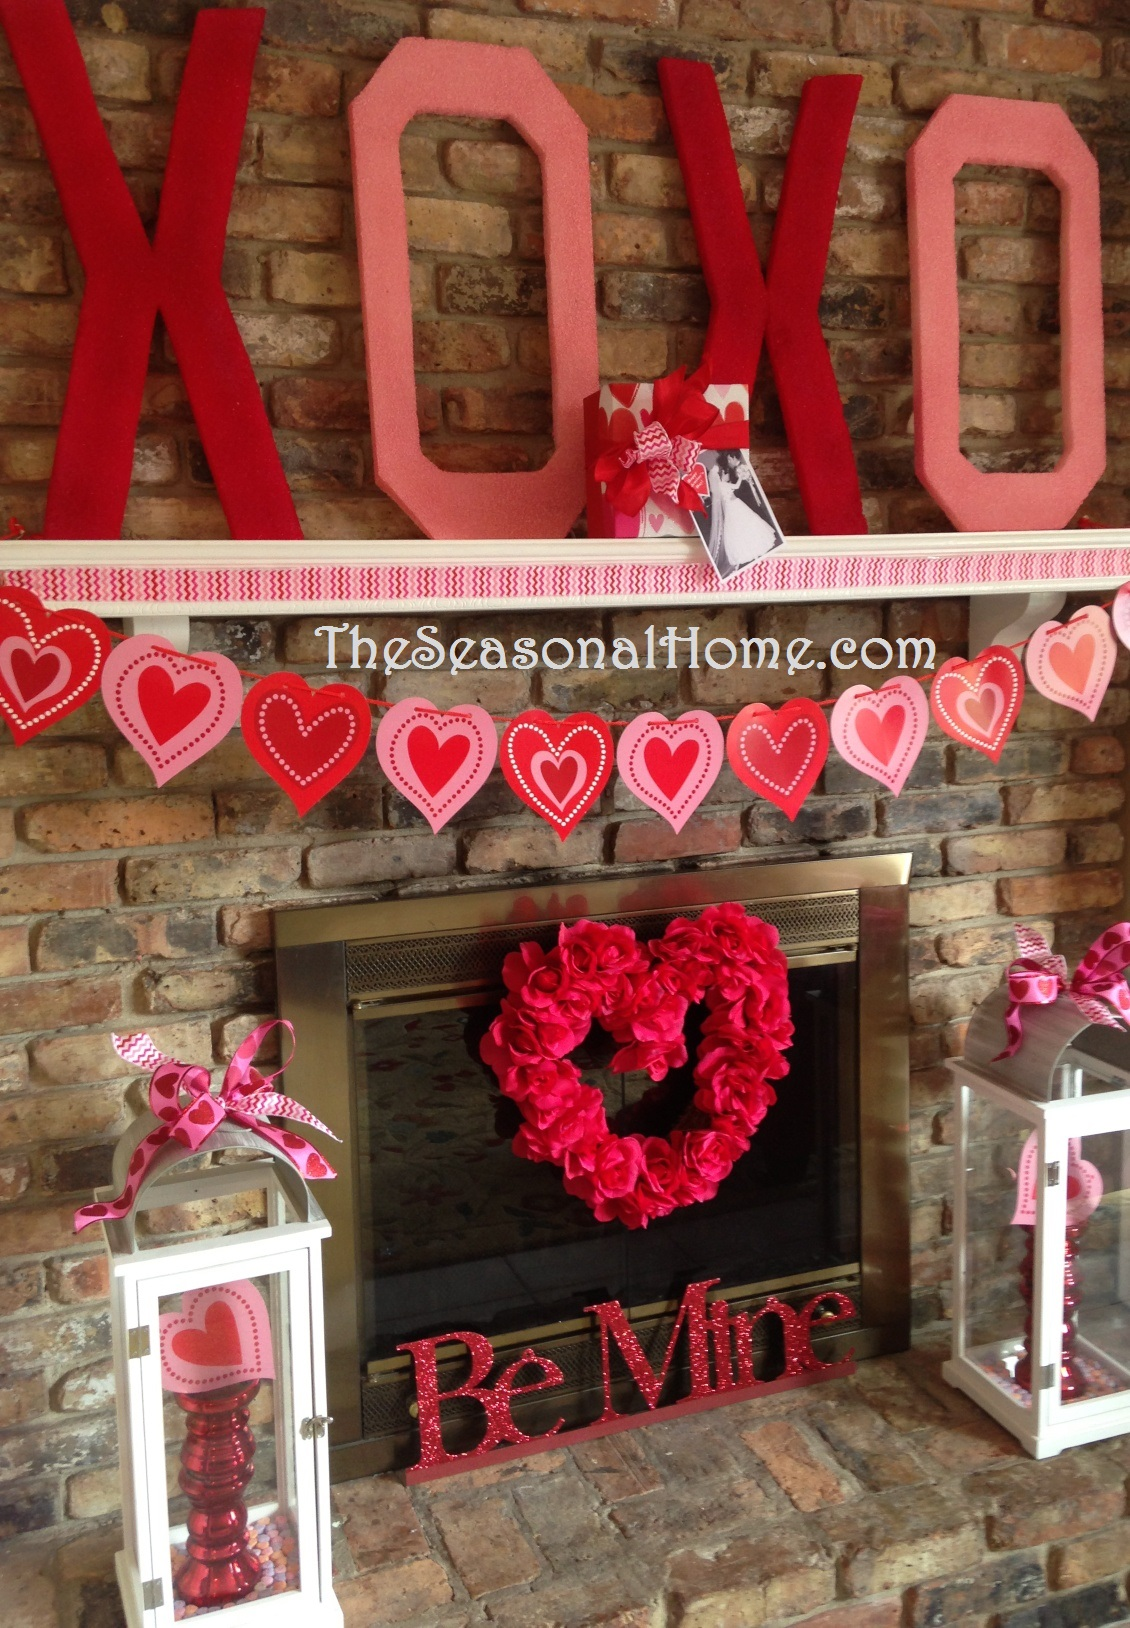 Valentine kisses hugs d i y decor gift idea the for Home decorations for valentine s day